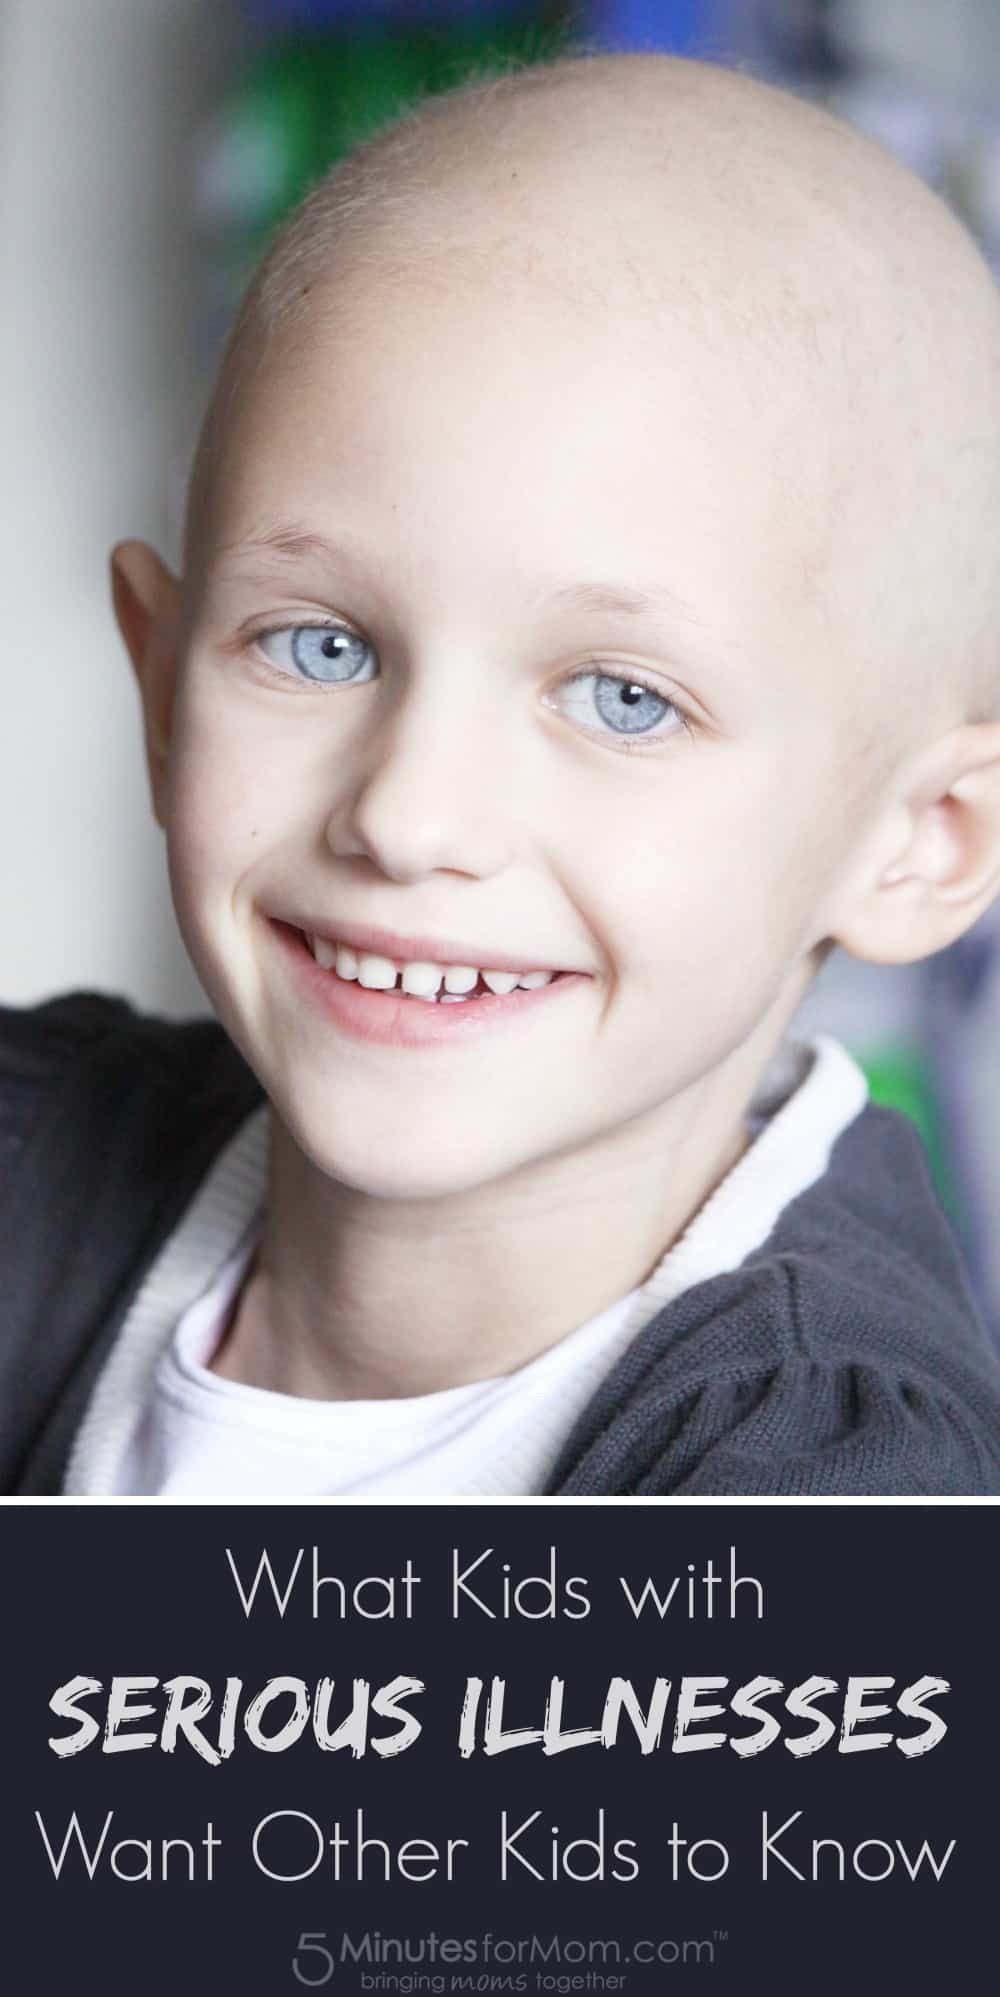 What kids with serious illnesses want other kids to know